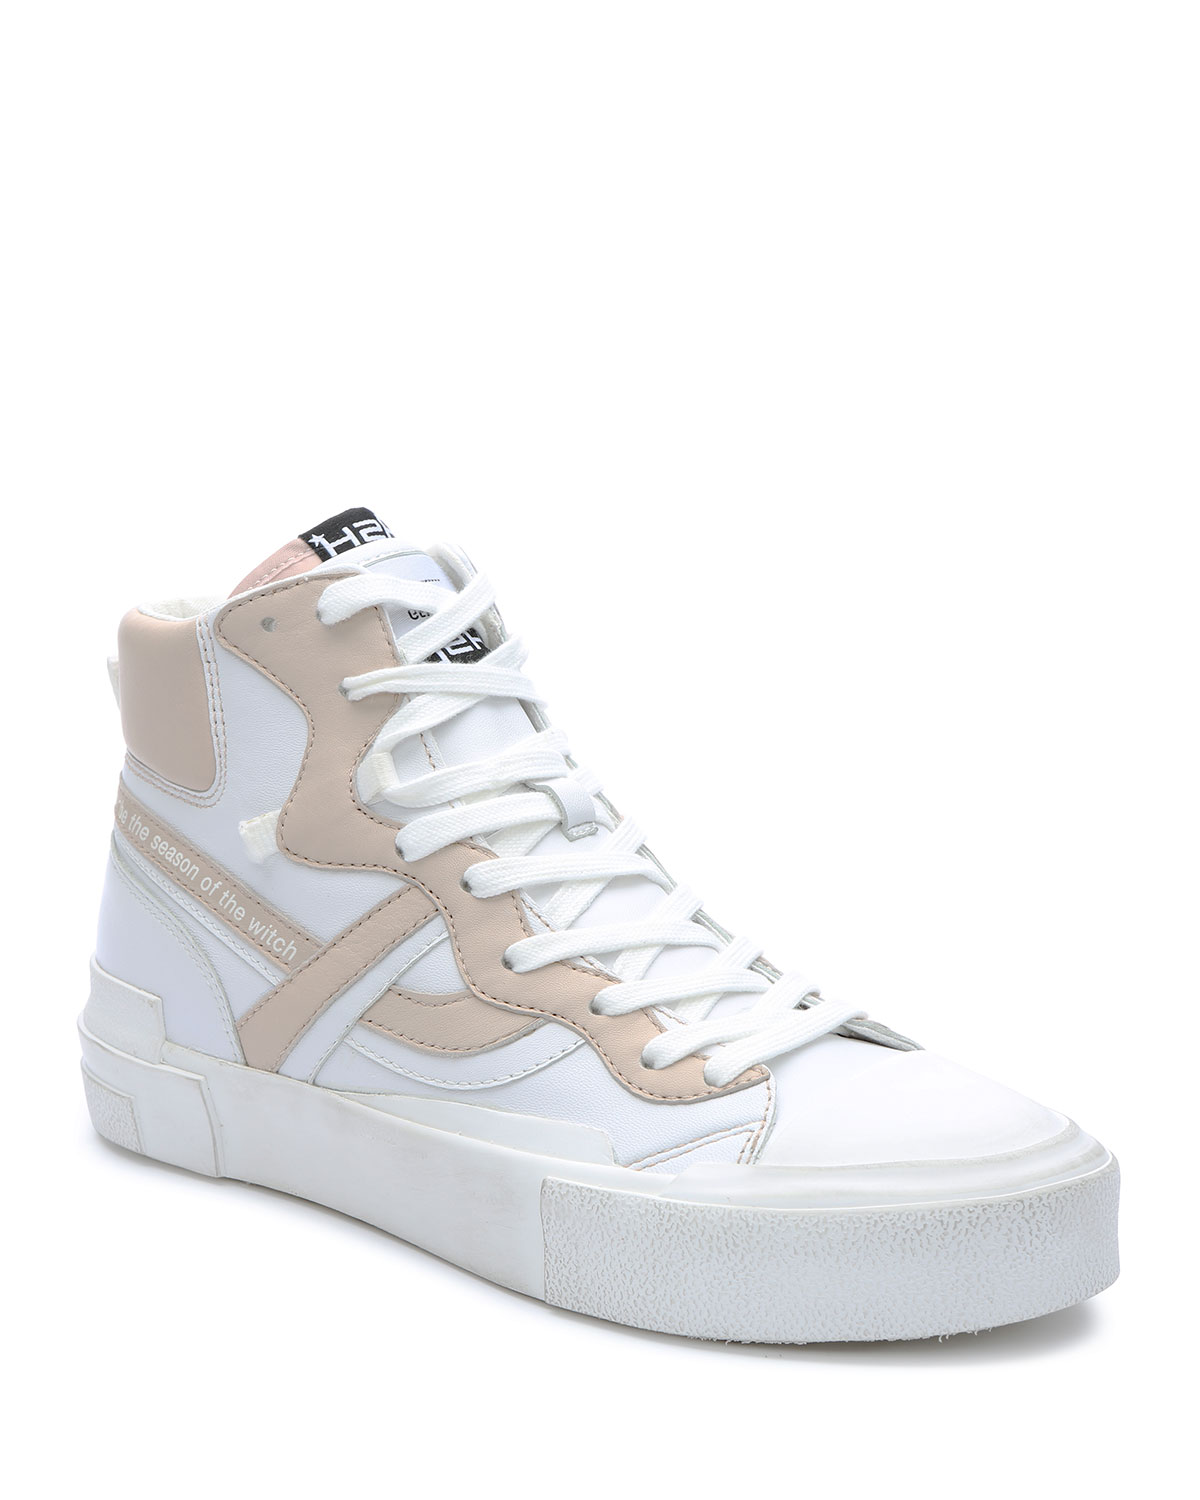 Grease Bicolor Leather High-Top Sneakers